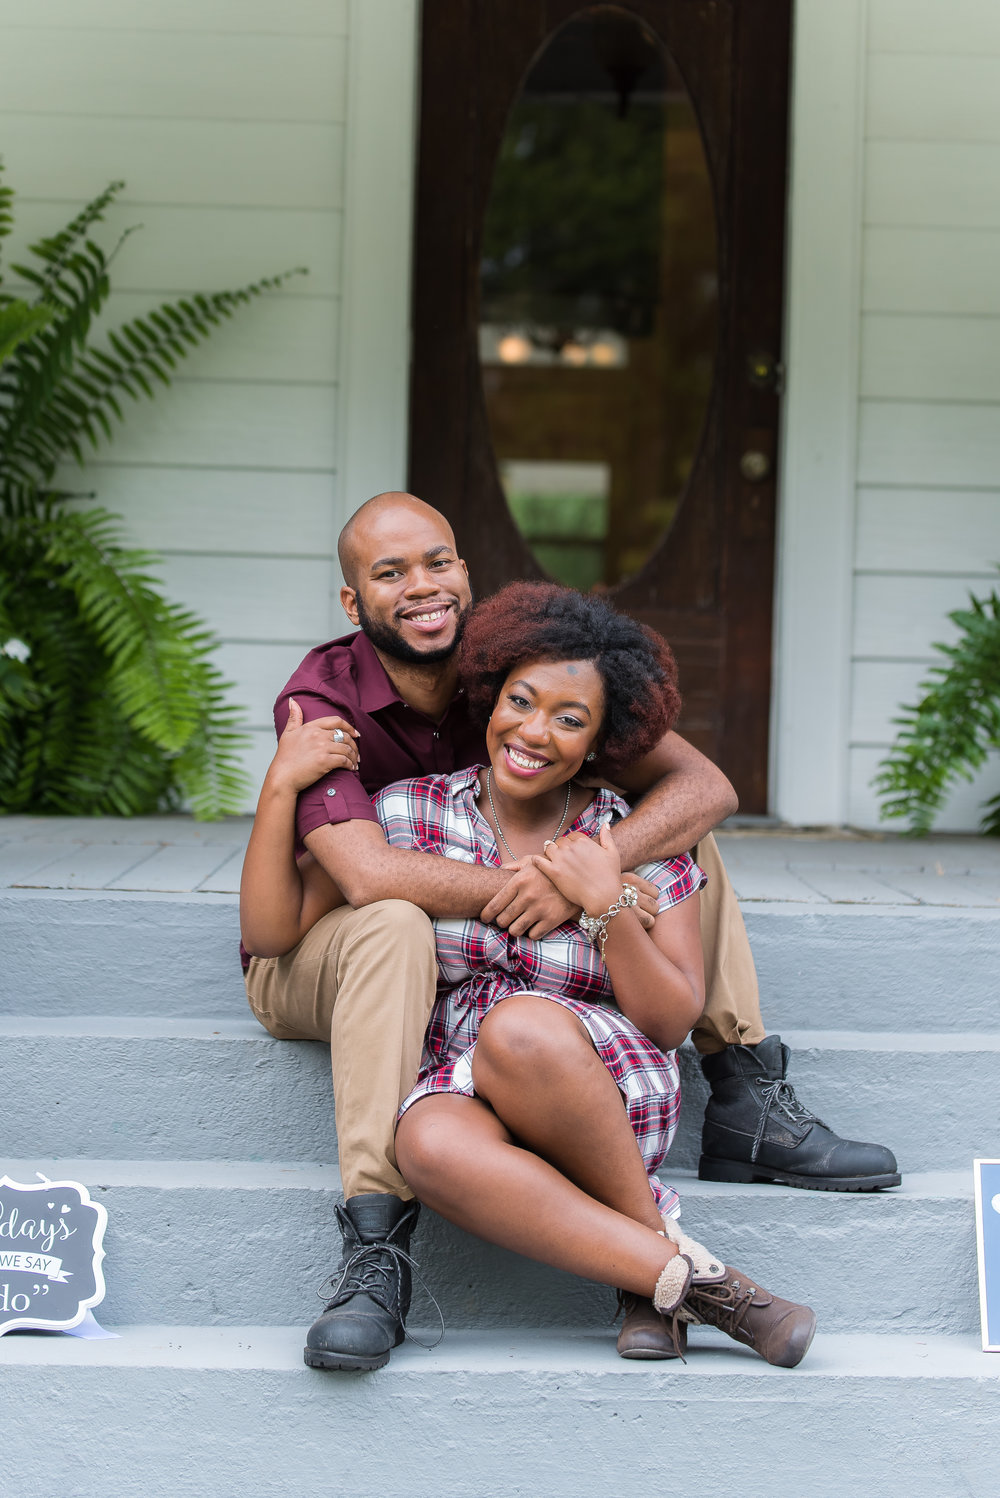 Abigail + James - Endless Memories - McGarity House Engagement Photos (27 of 55).jpg